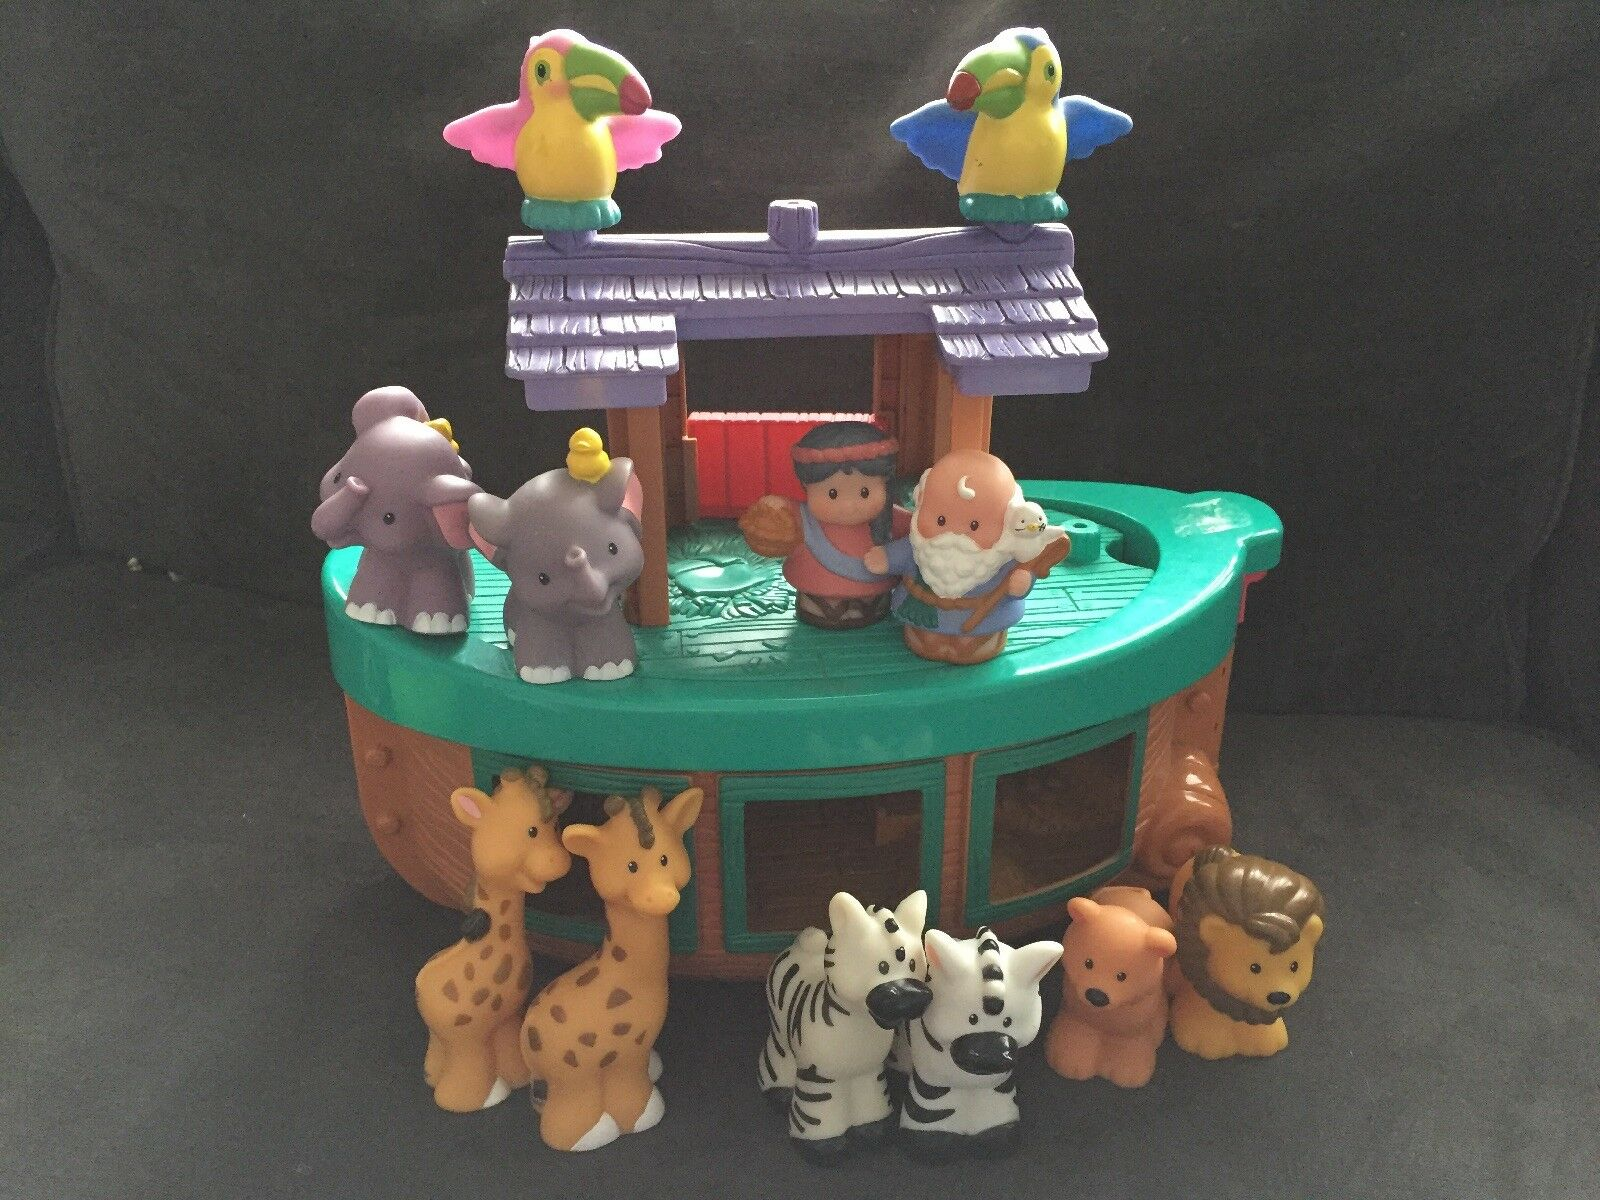 Little People NOAH'S ARK Playset with with with 16 Animals FISHER-PRICE 2002 74ff99